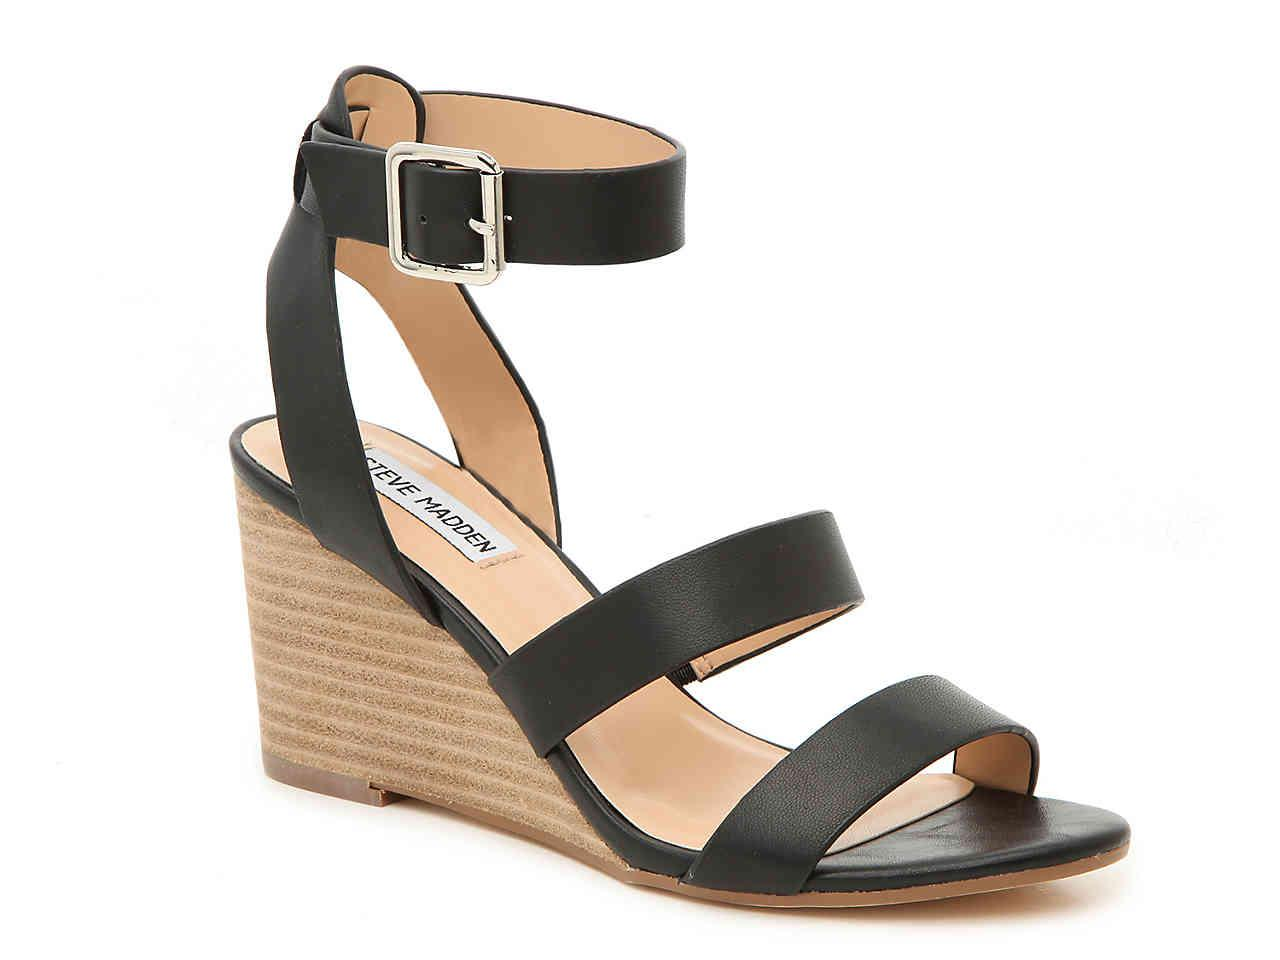 0b2c44b0daa Steve Madden - Black Caley Wedge Sandal - Lyst. View fullscreen